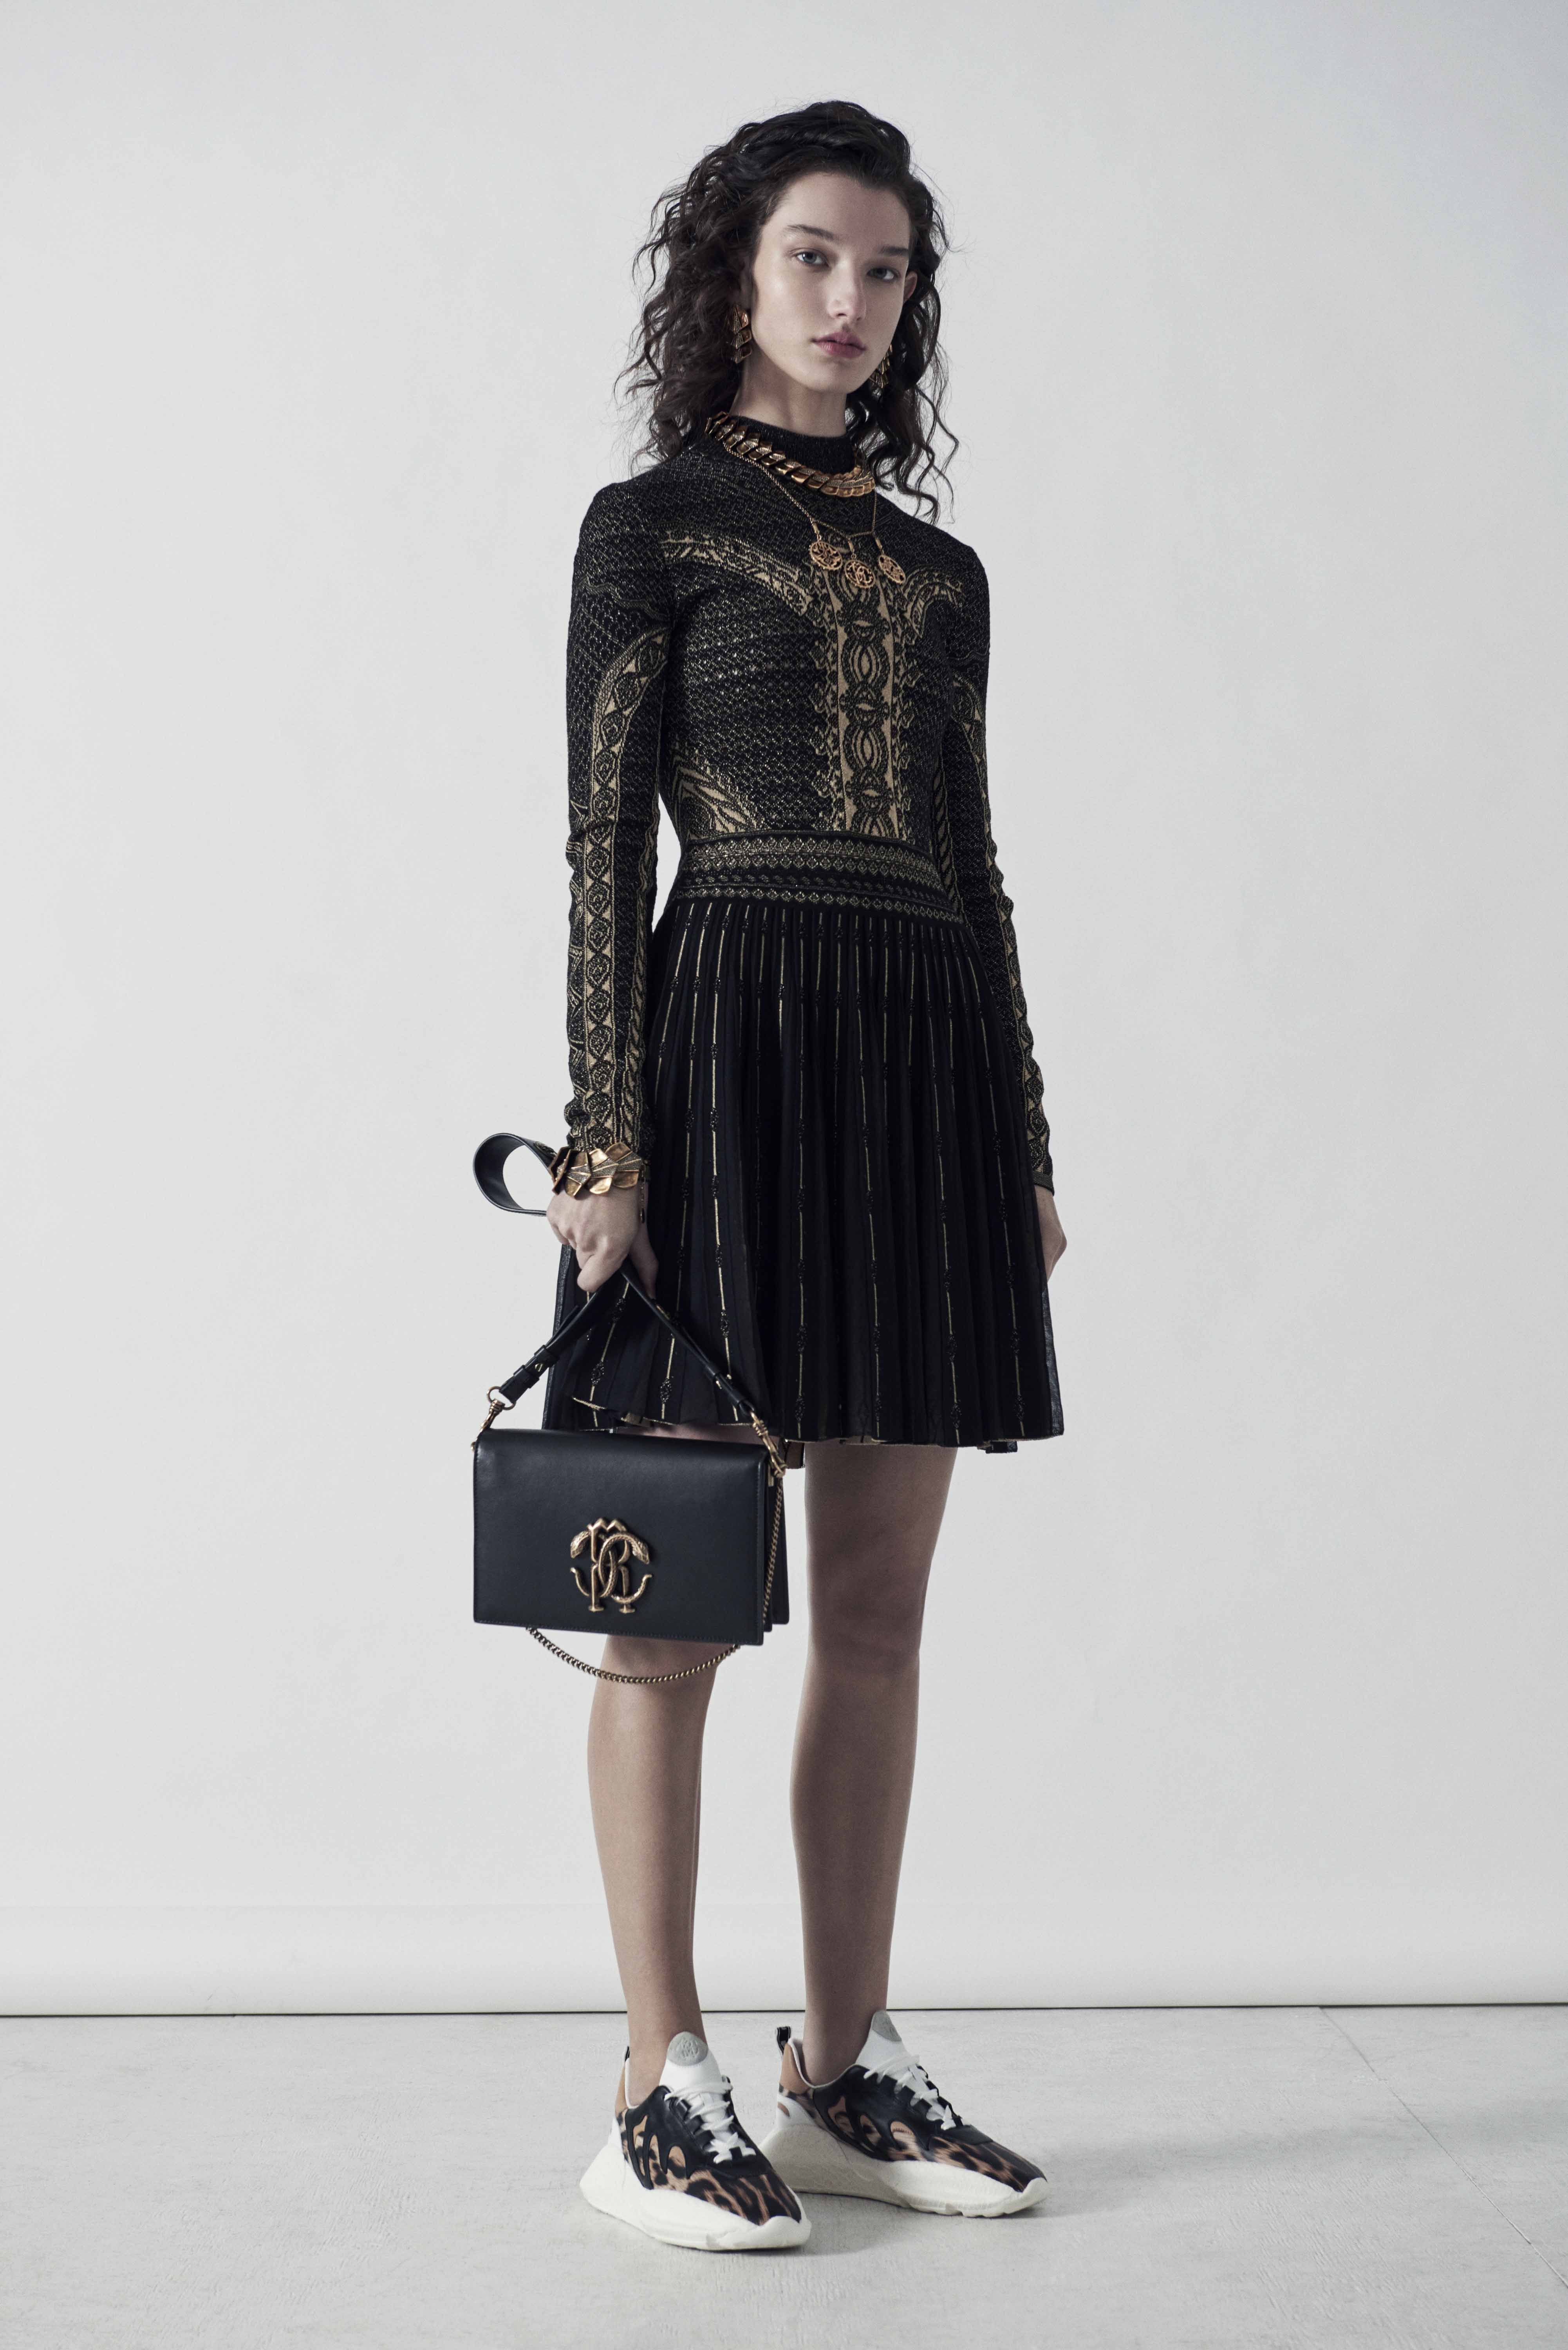 c92490efc4a8d The Roberto Cavalli Prefall 2019 collection is inspired by different  cultures and global artistic visual references